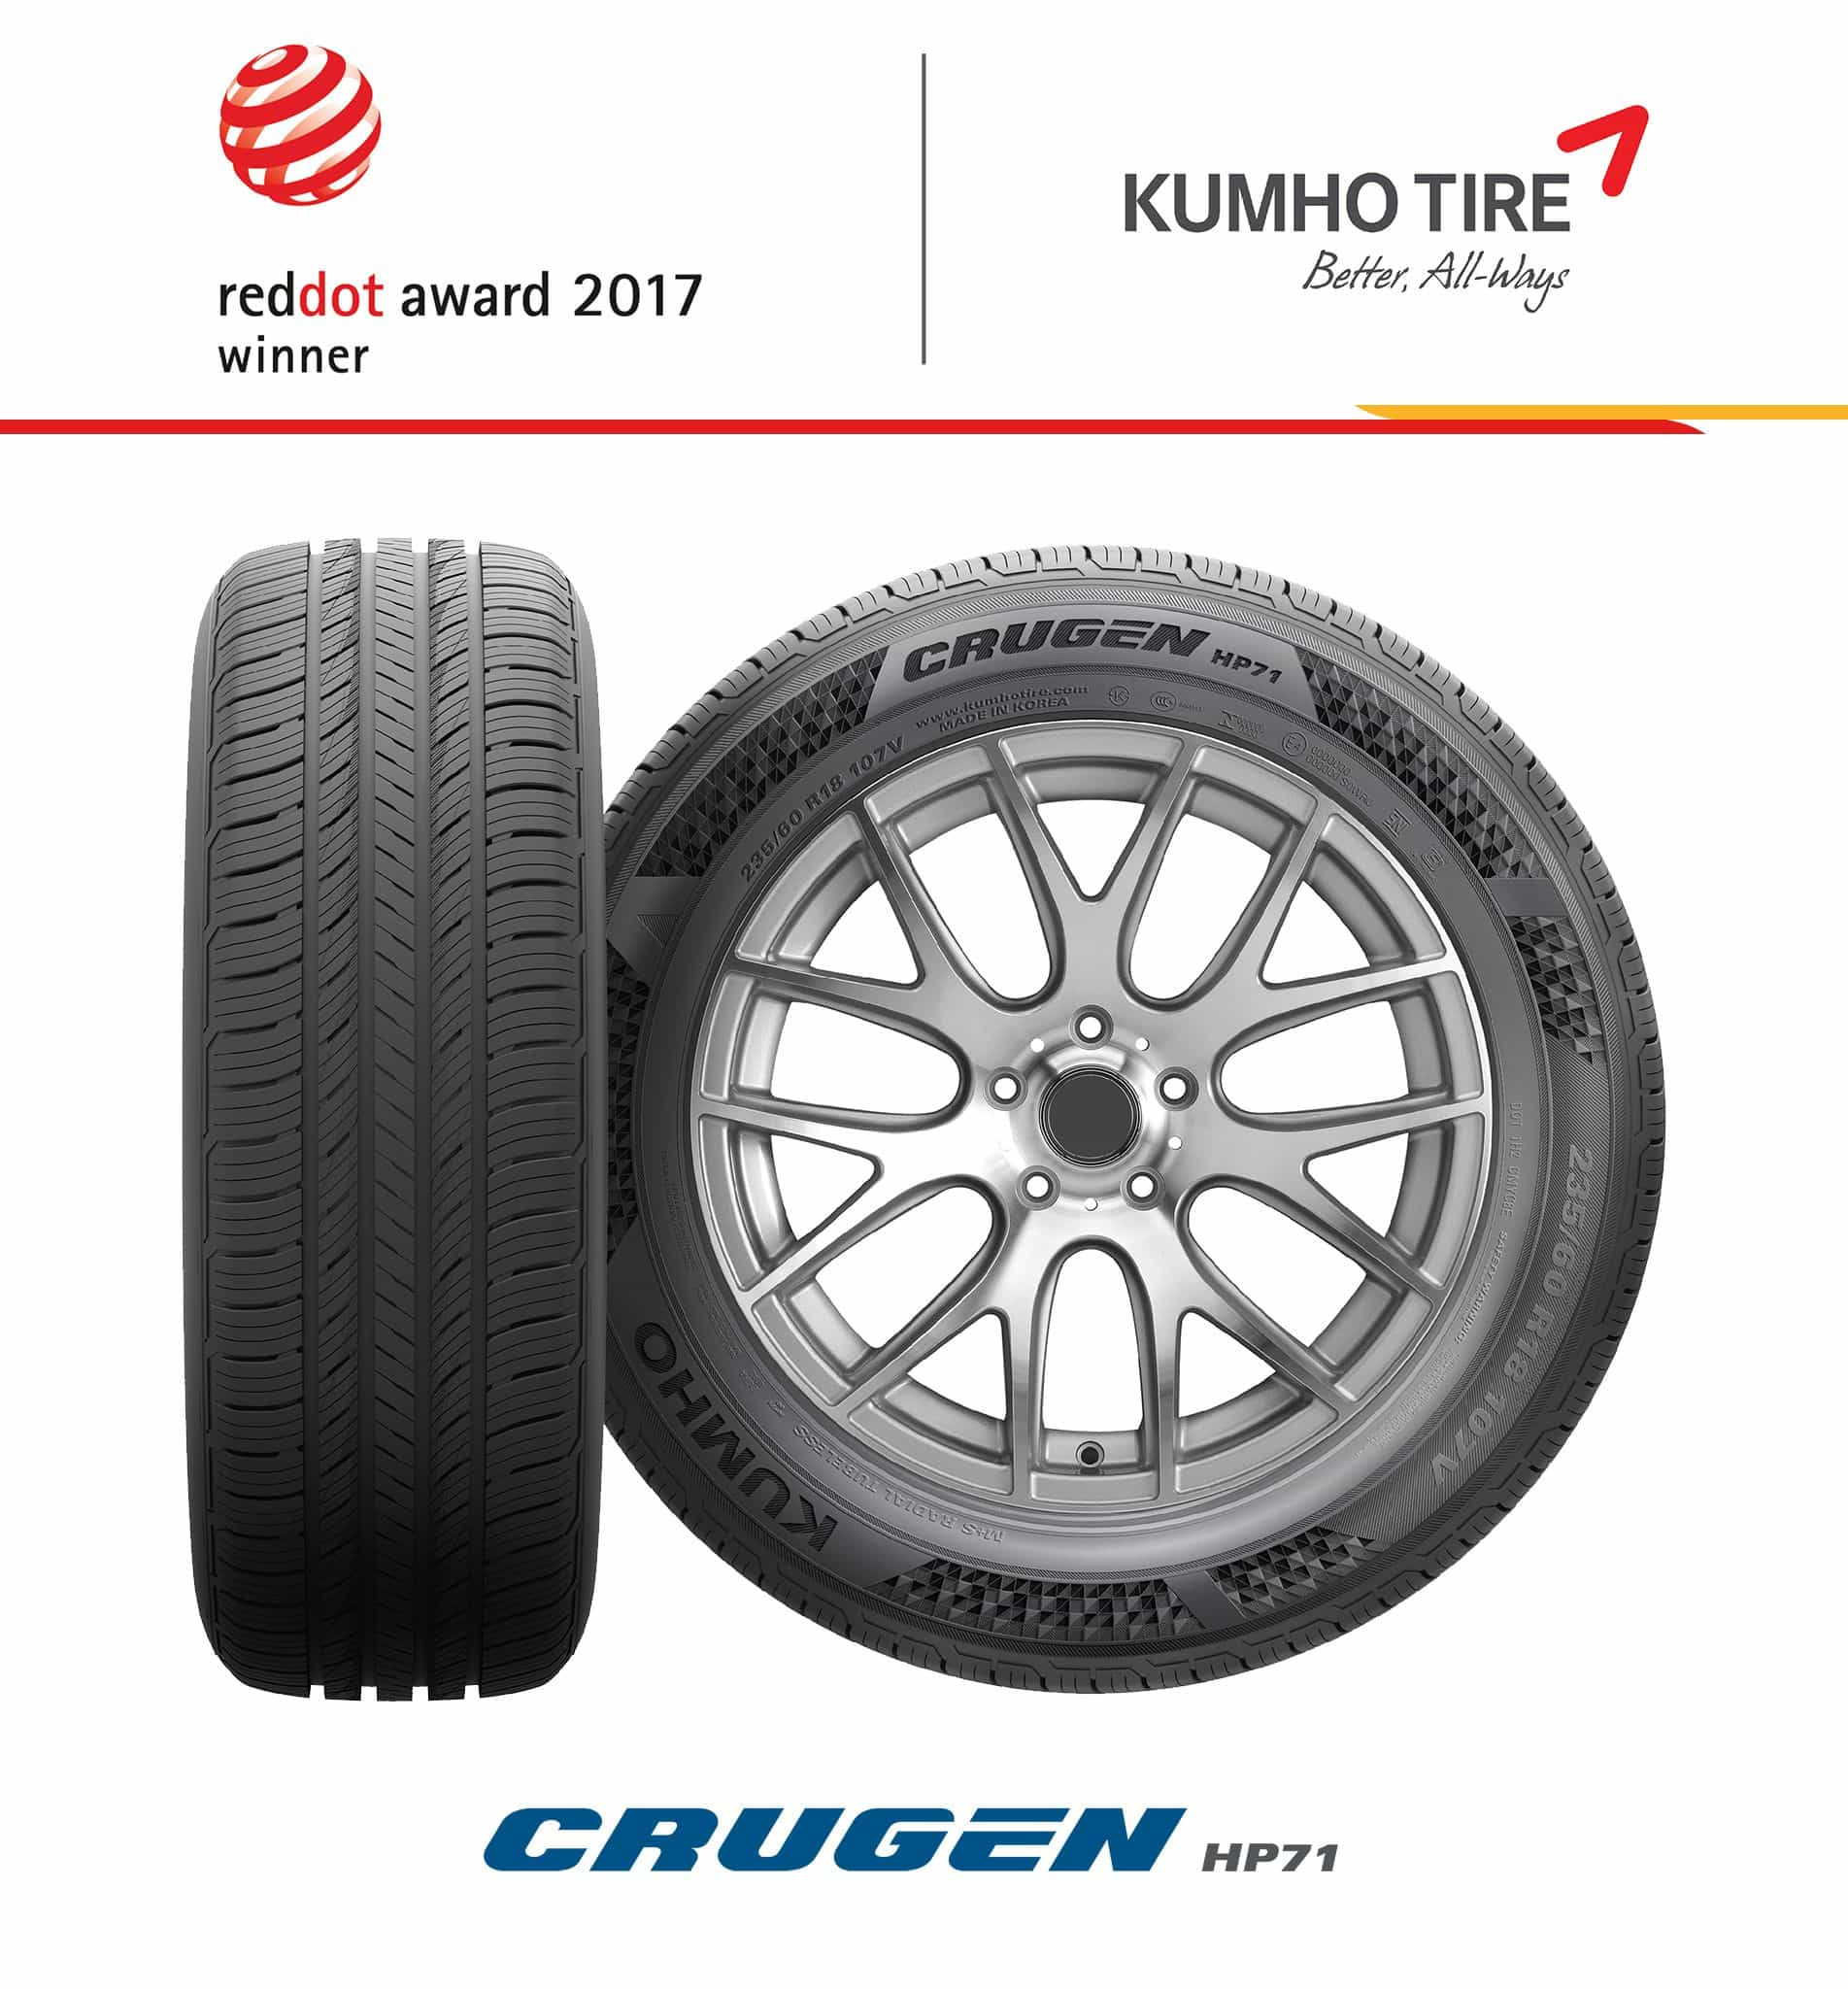 Kumho Tyre Wins Red Dot Award For Product Design 1